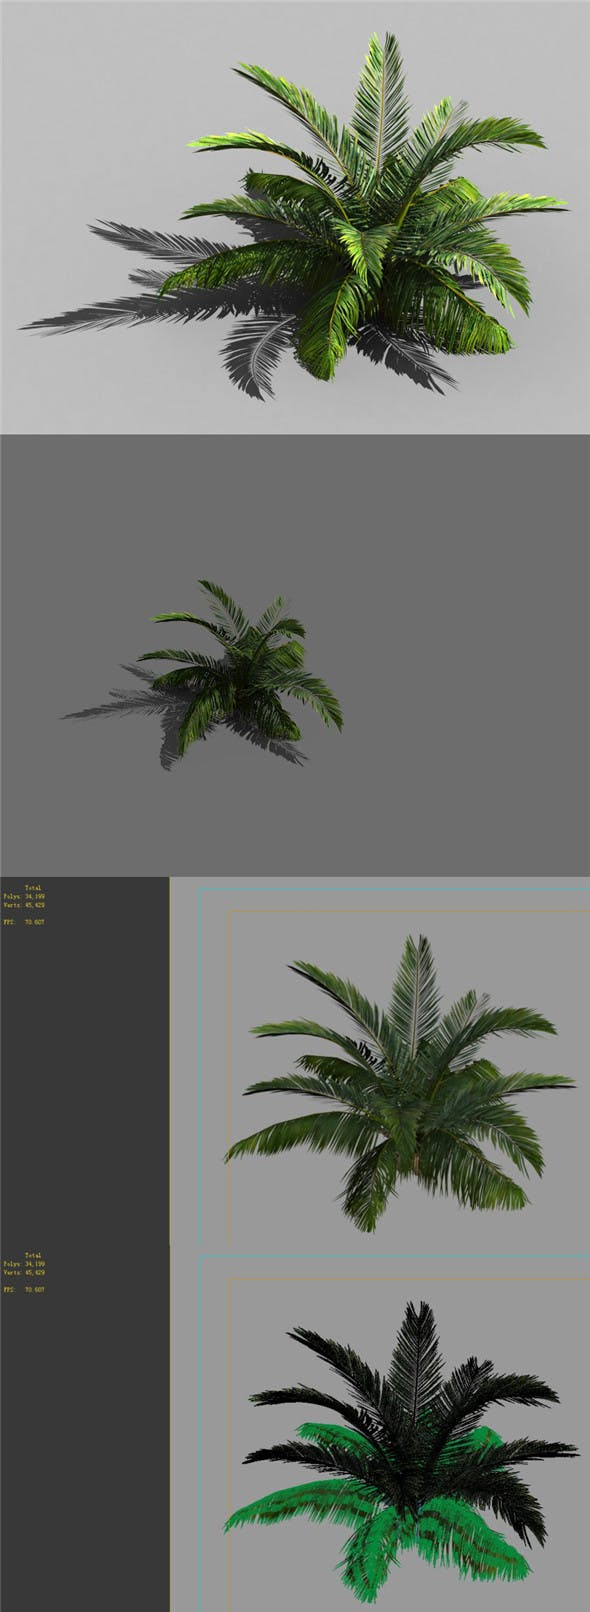 Game Model - Forest - Coconut Tree 01 - 3DOcean Item for Sale